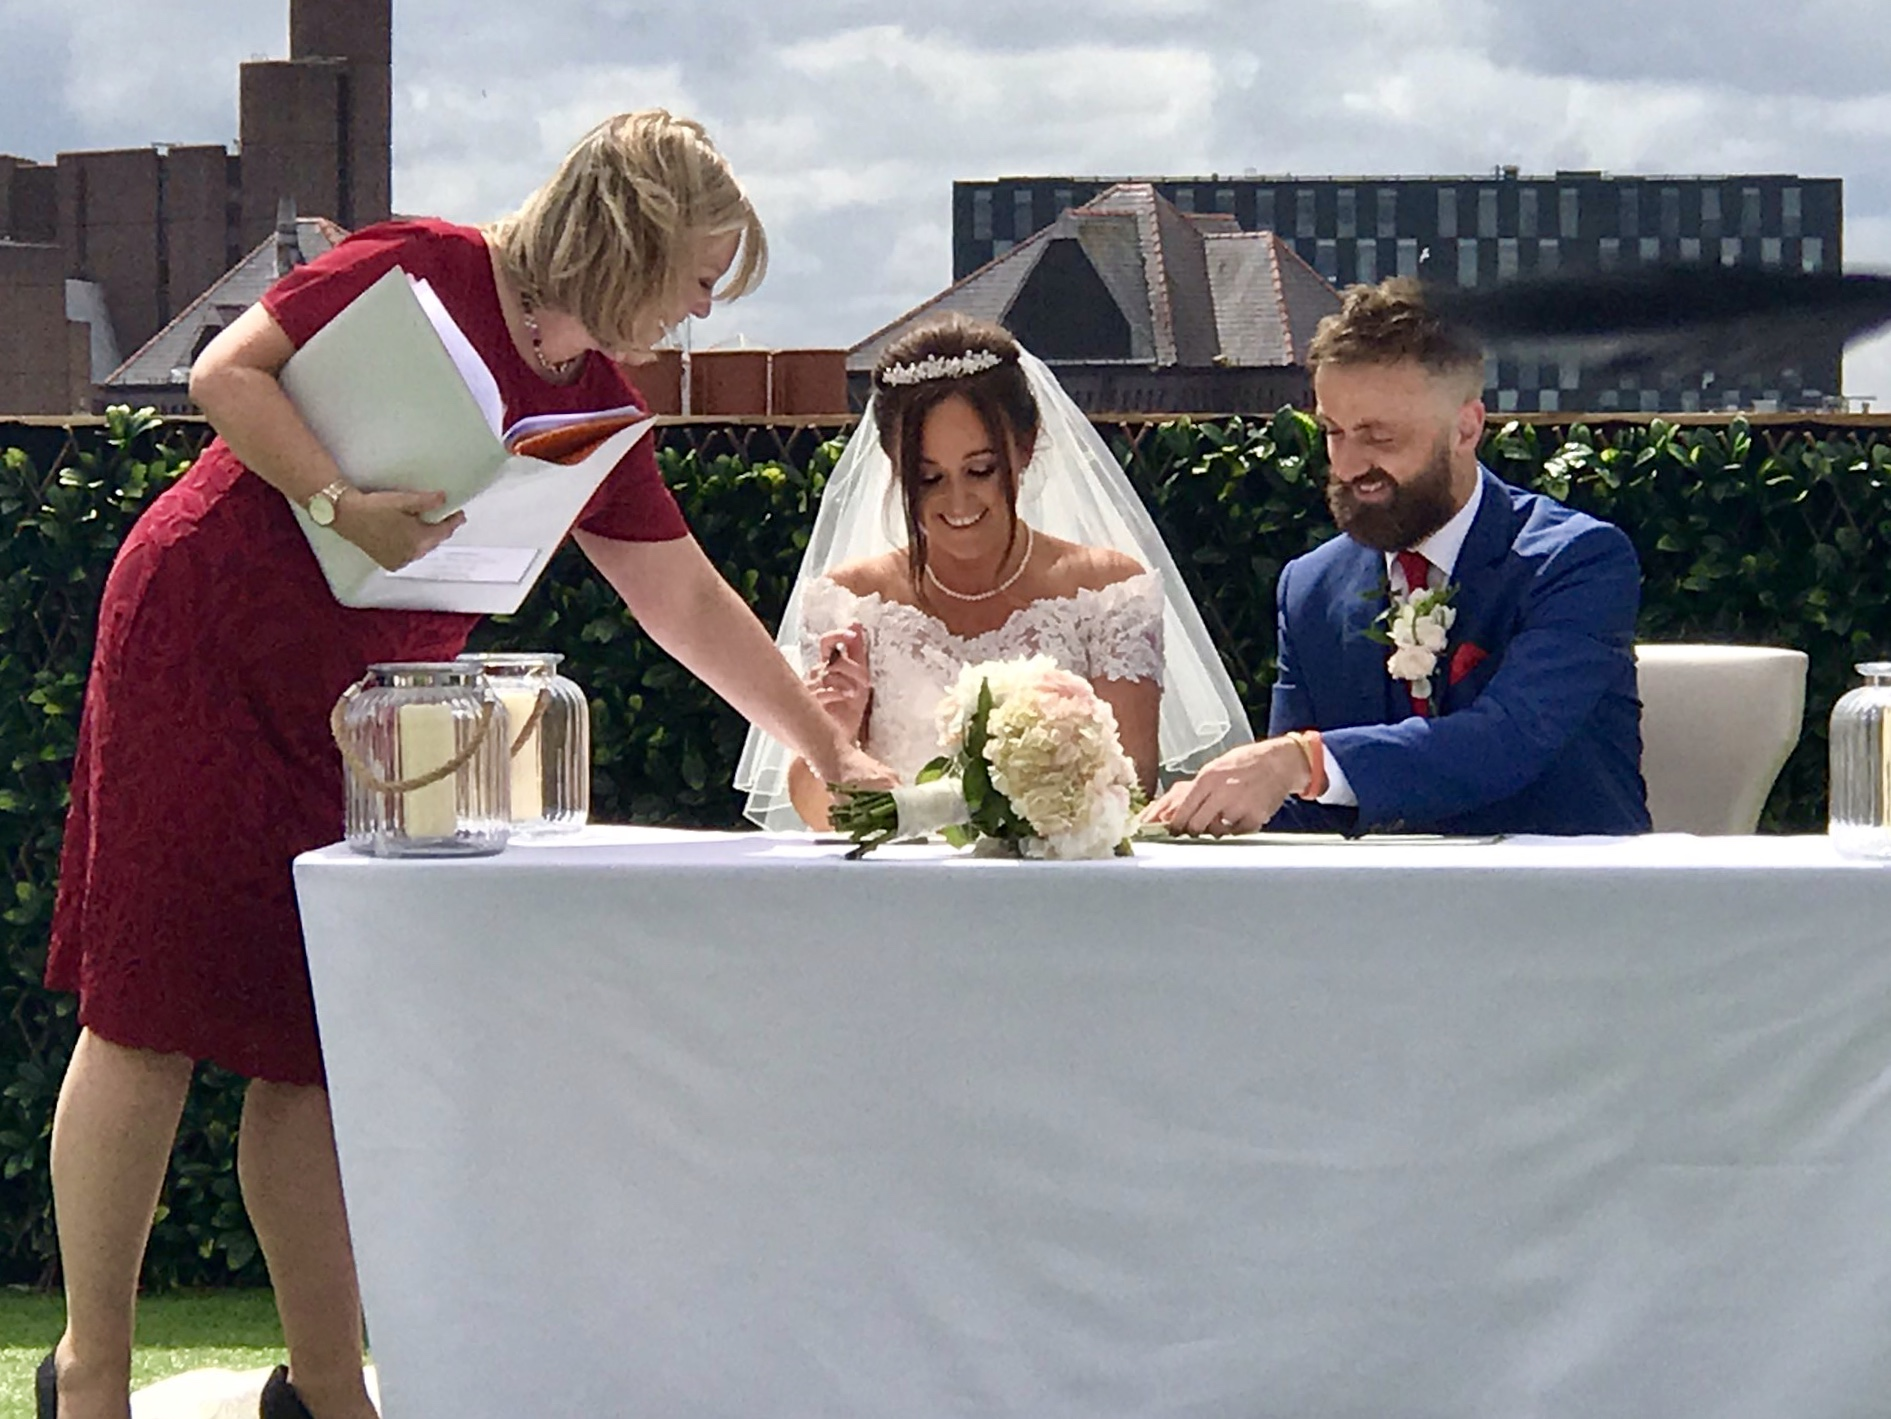 Liverpool Rooftop Wedding Celebrant, Lorraine Hull